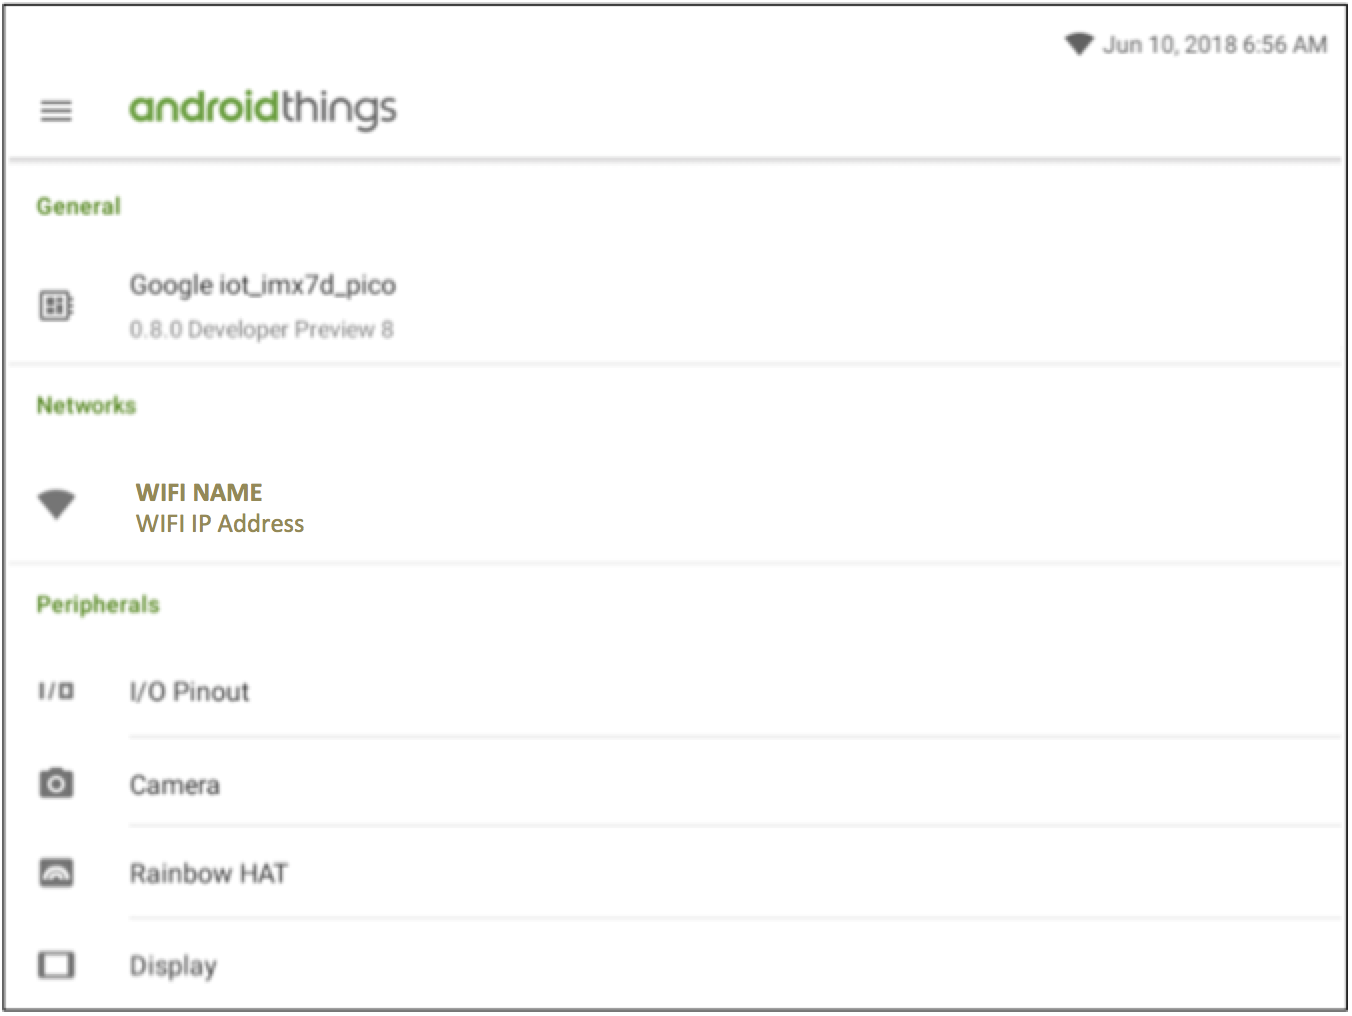 Into Android Things with zero IoT knowledge  - Elye - Medium